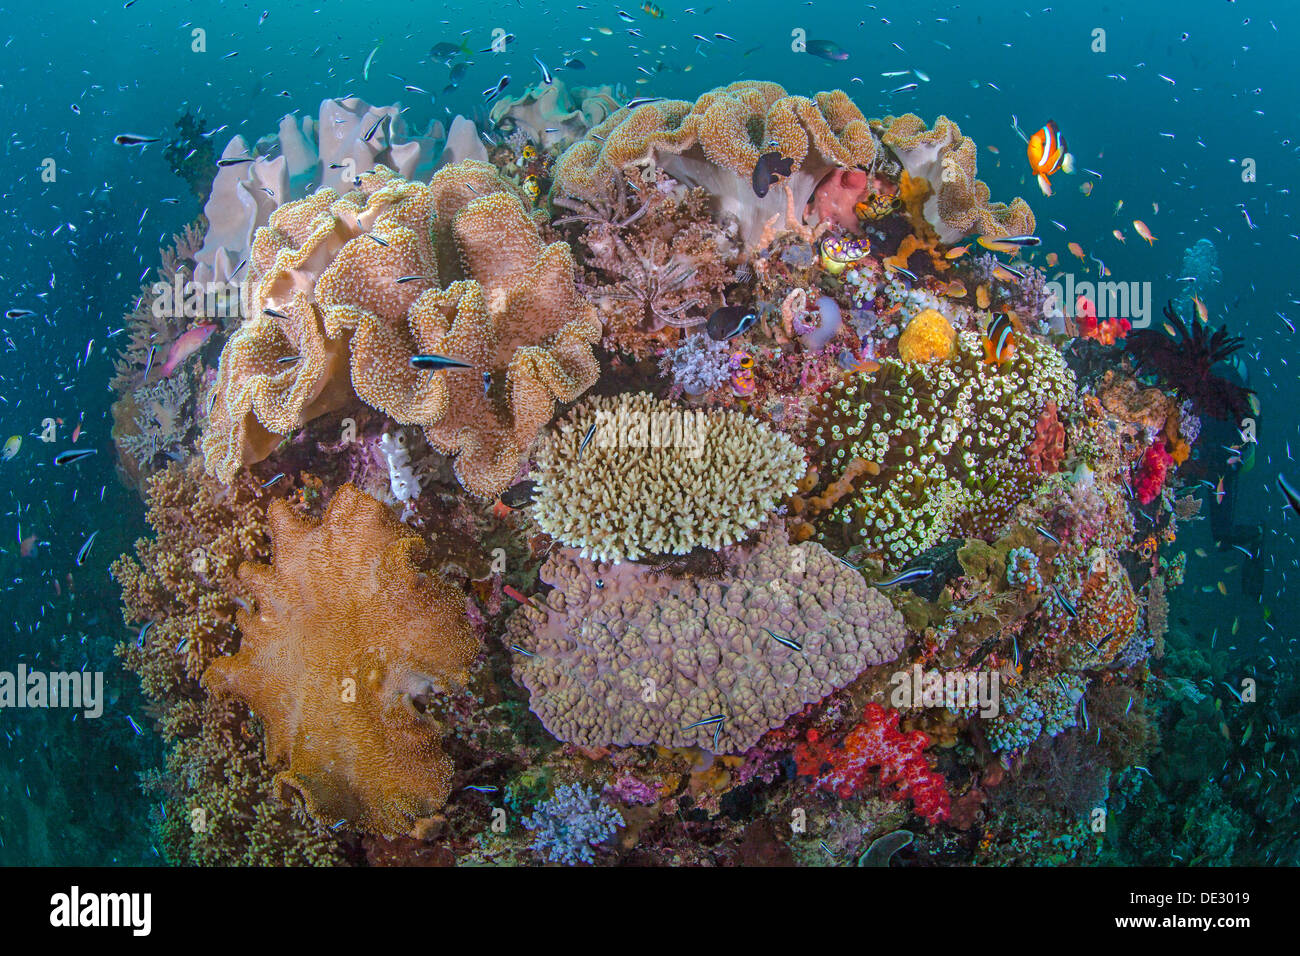 Vibrant coral reef with diversity of marine life. Raja Ampat, Indonesia - Stock Image